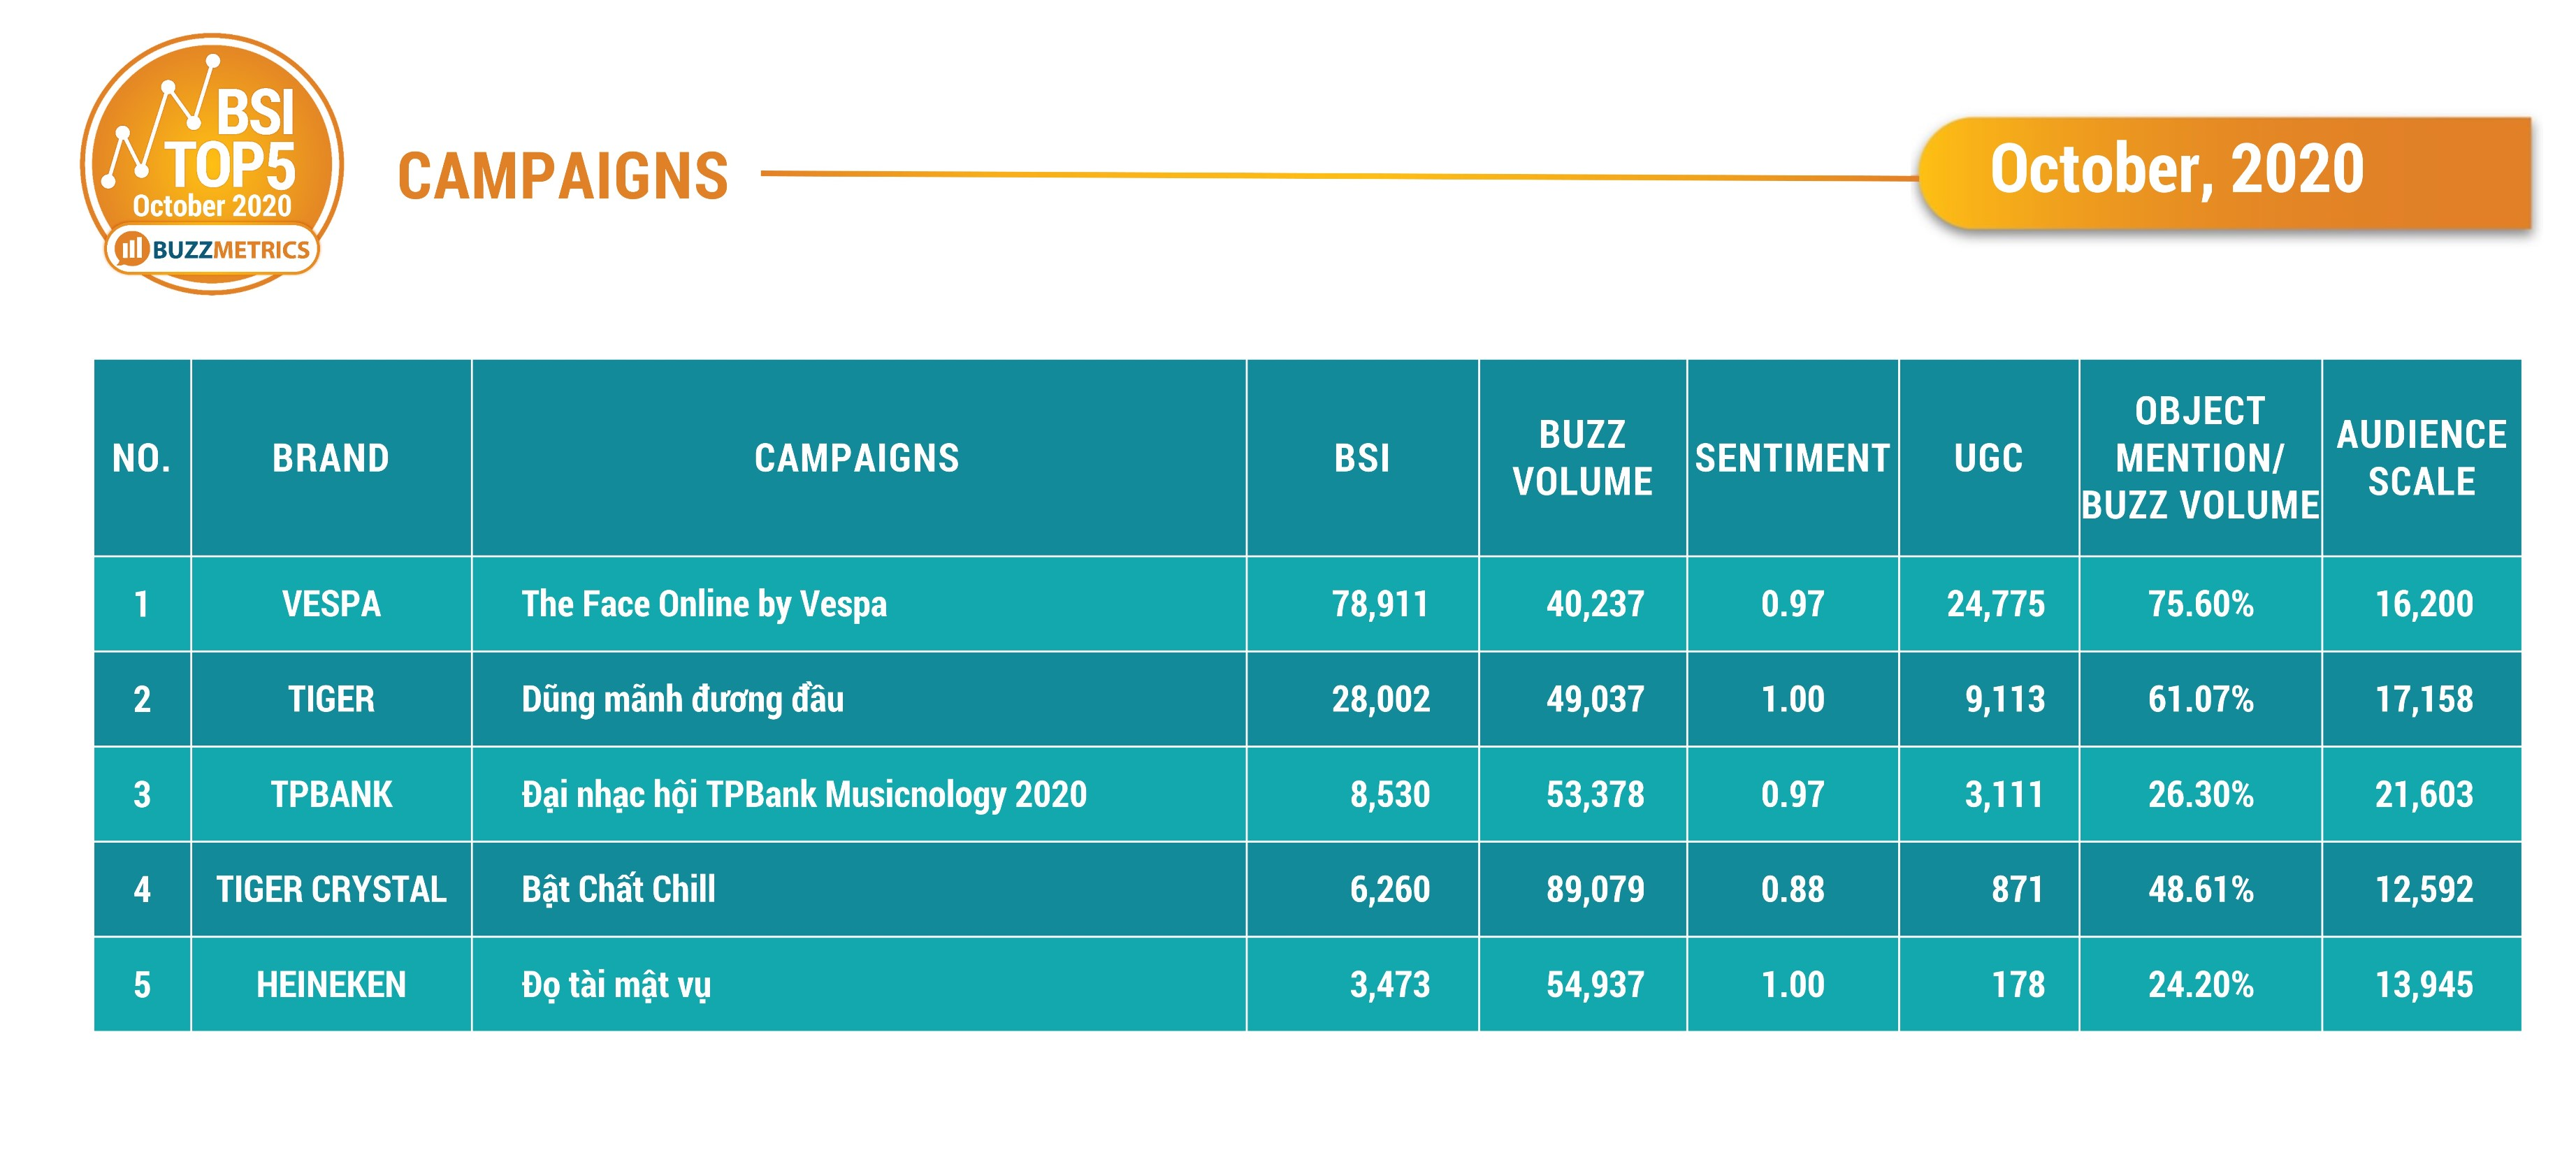 BSI Top5 OCT 2020 CAMPAIGNS TABLE